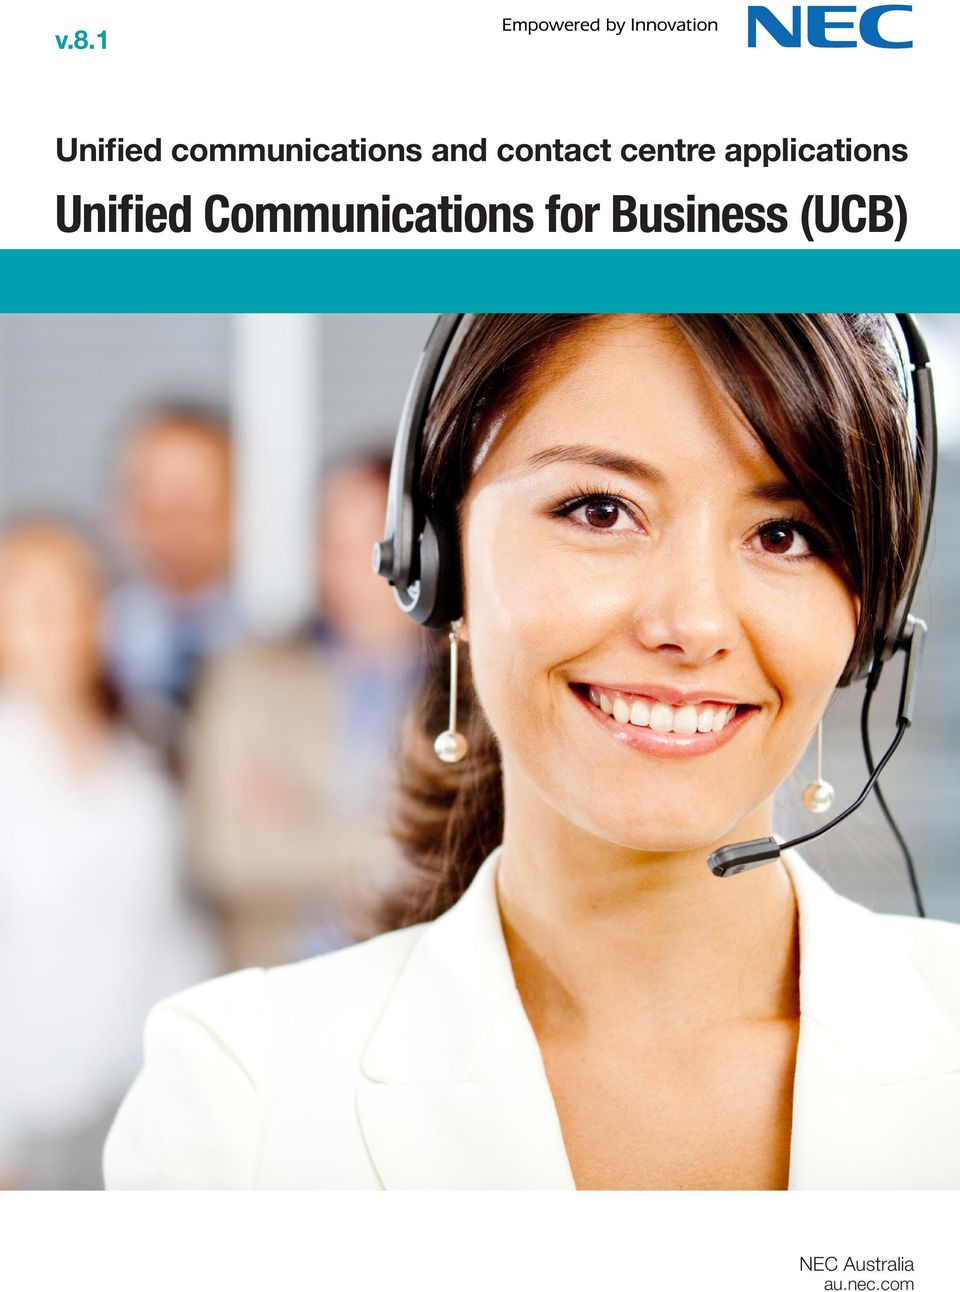 Unified Communications for